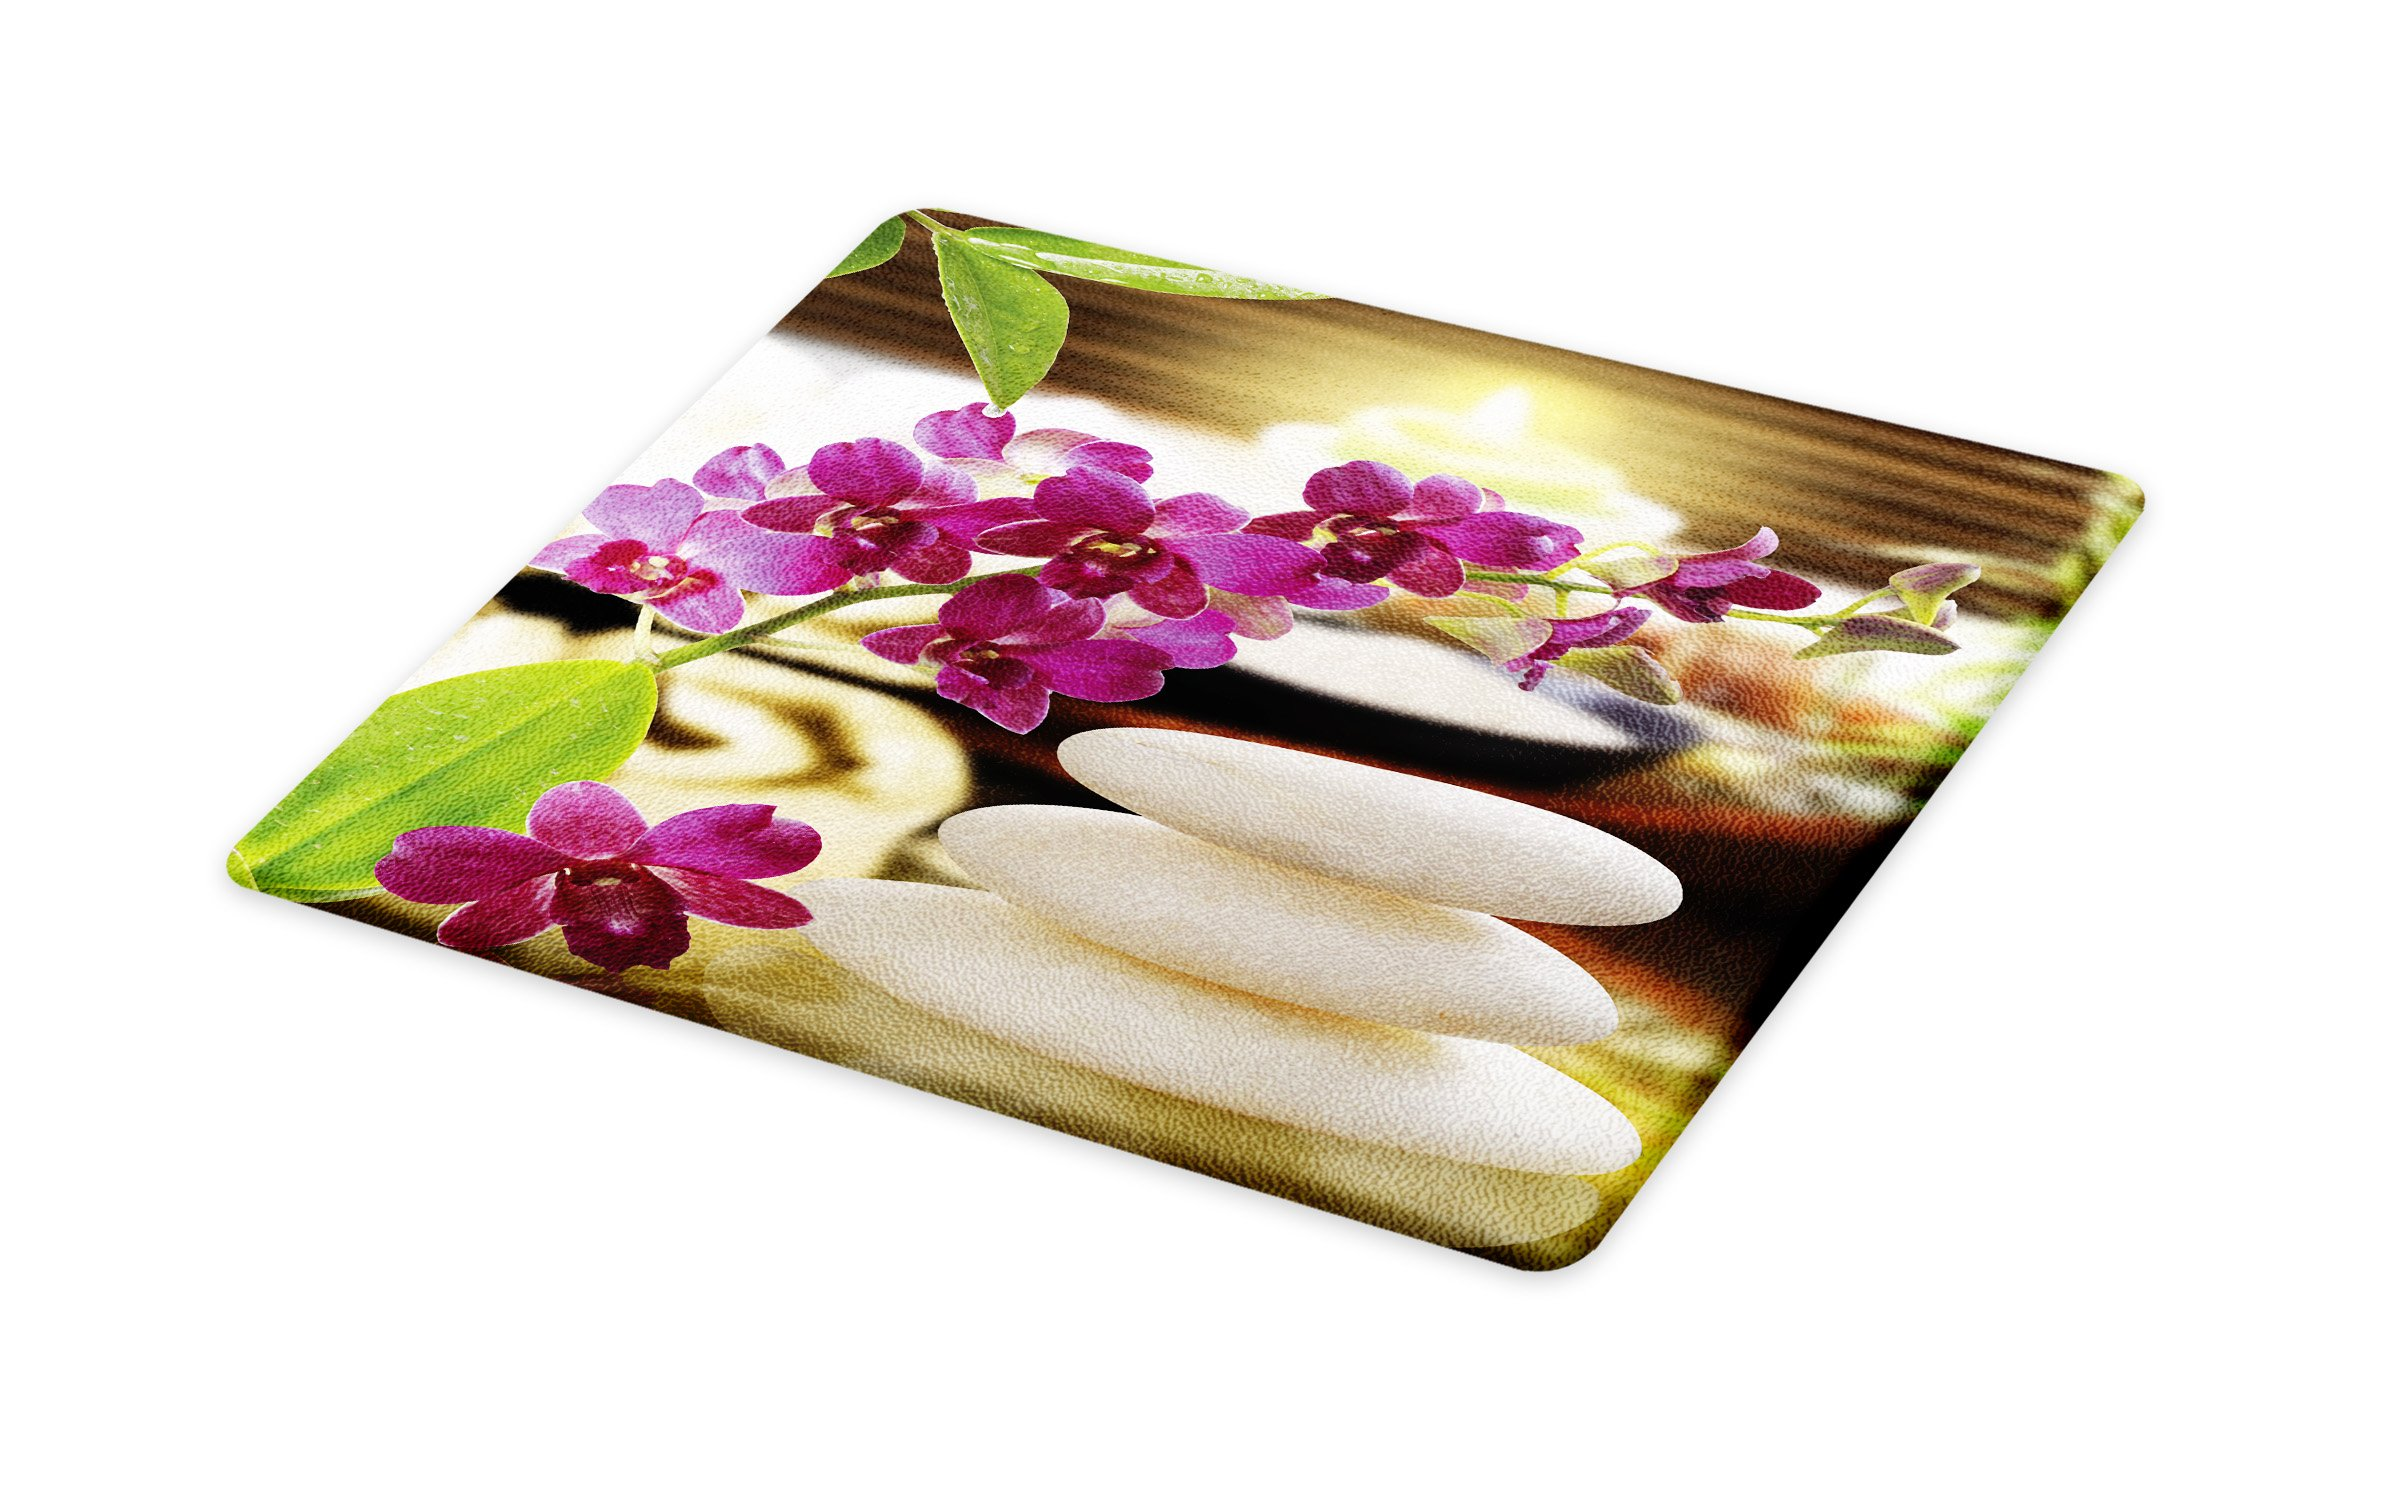 Lunarable Spa Cutting Board, Refreshing Spa Day with Stones Herbal Salts and The Exotic Flowers Print, Decorative Tempered Glass Cutting and Serving Board, Small Size, Purple White and Green